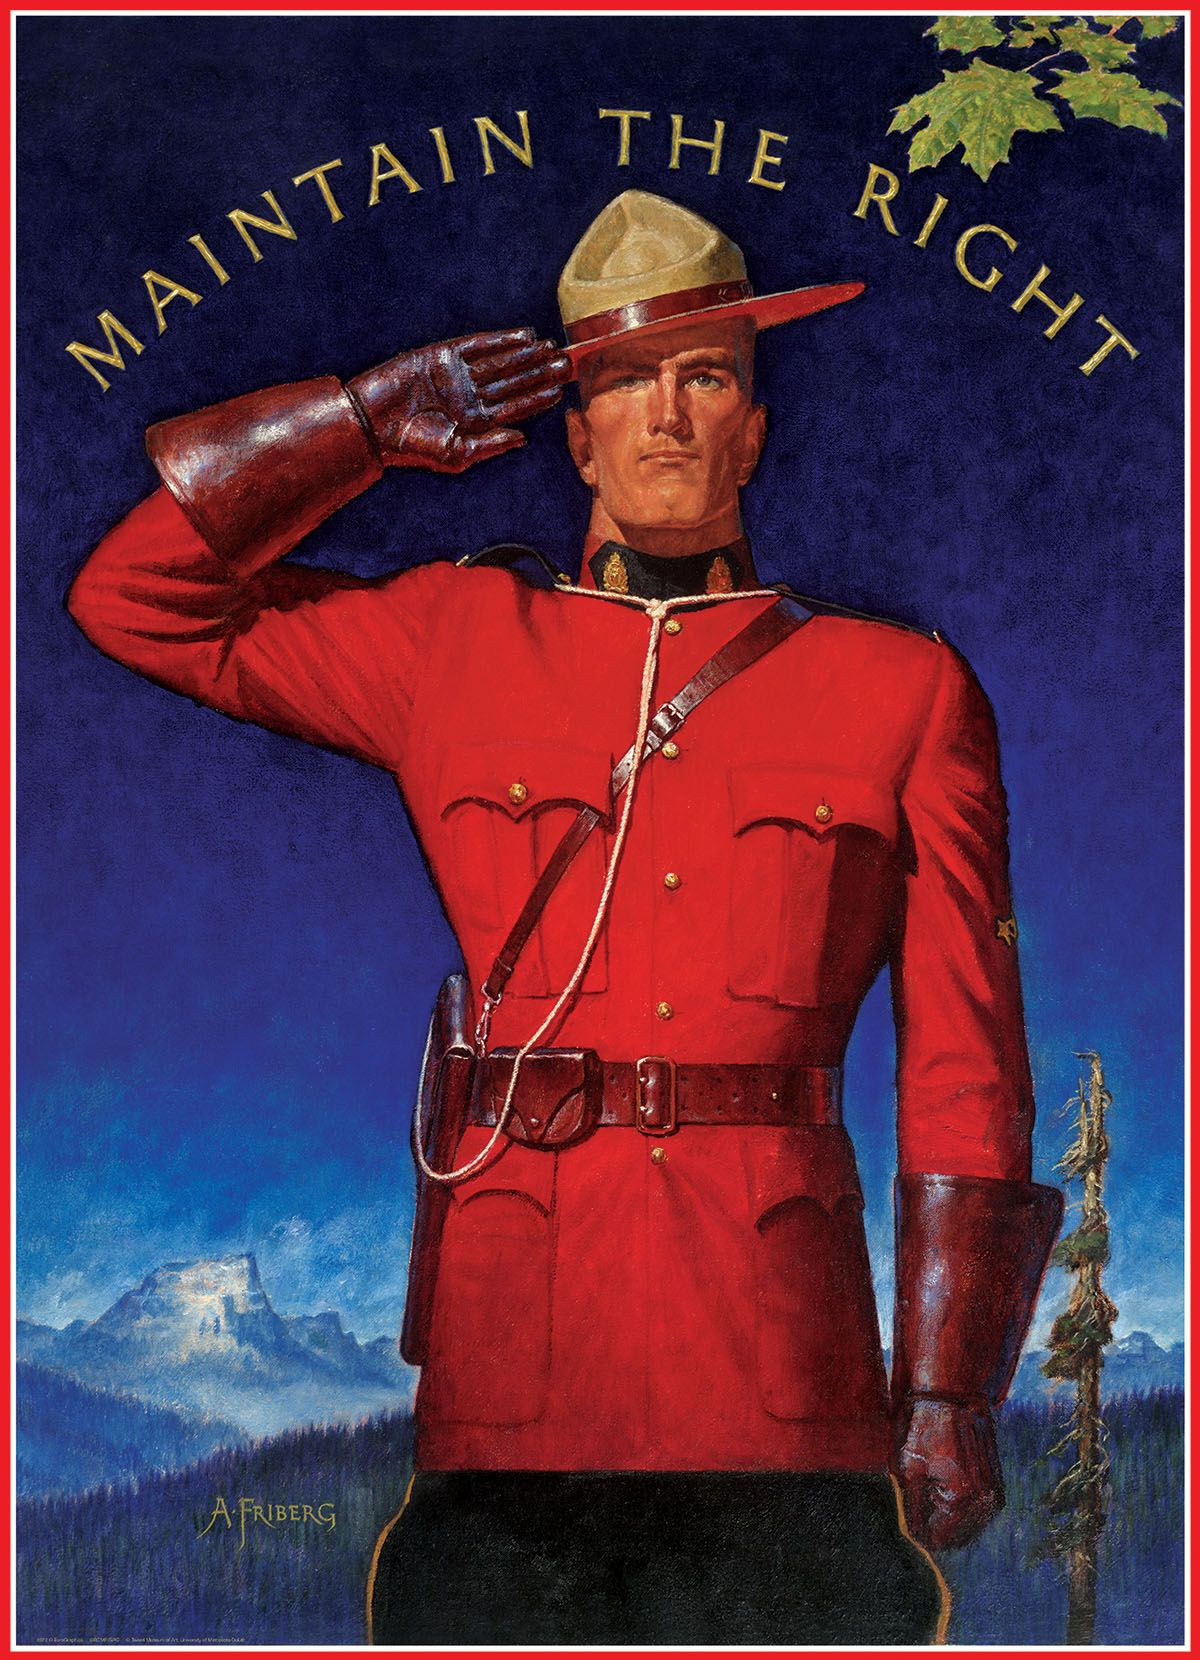 Royal Canadian Mounted Police Maintain The Right With Images